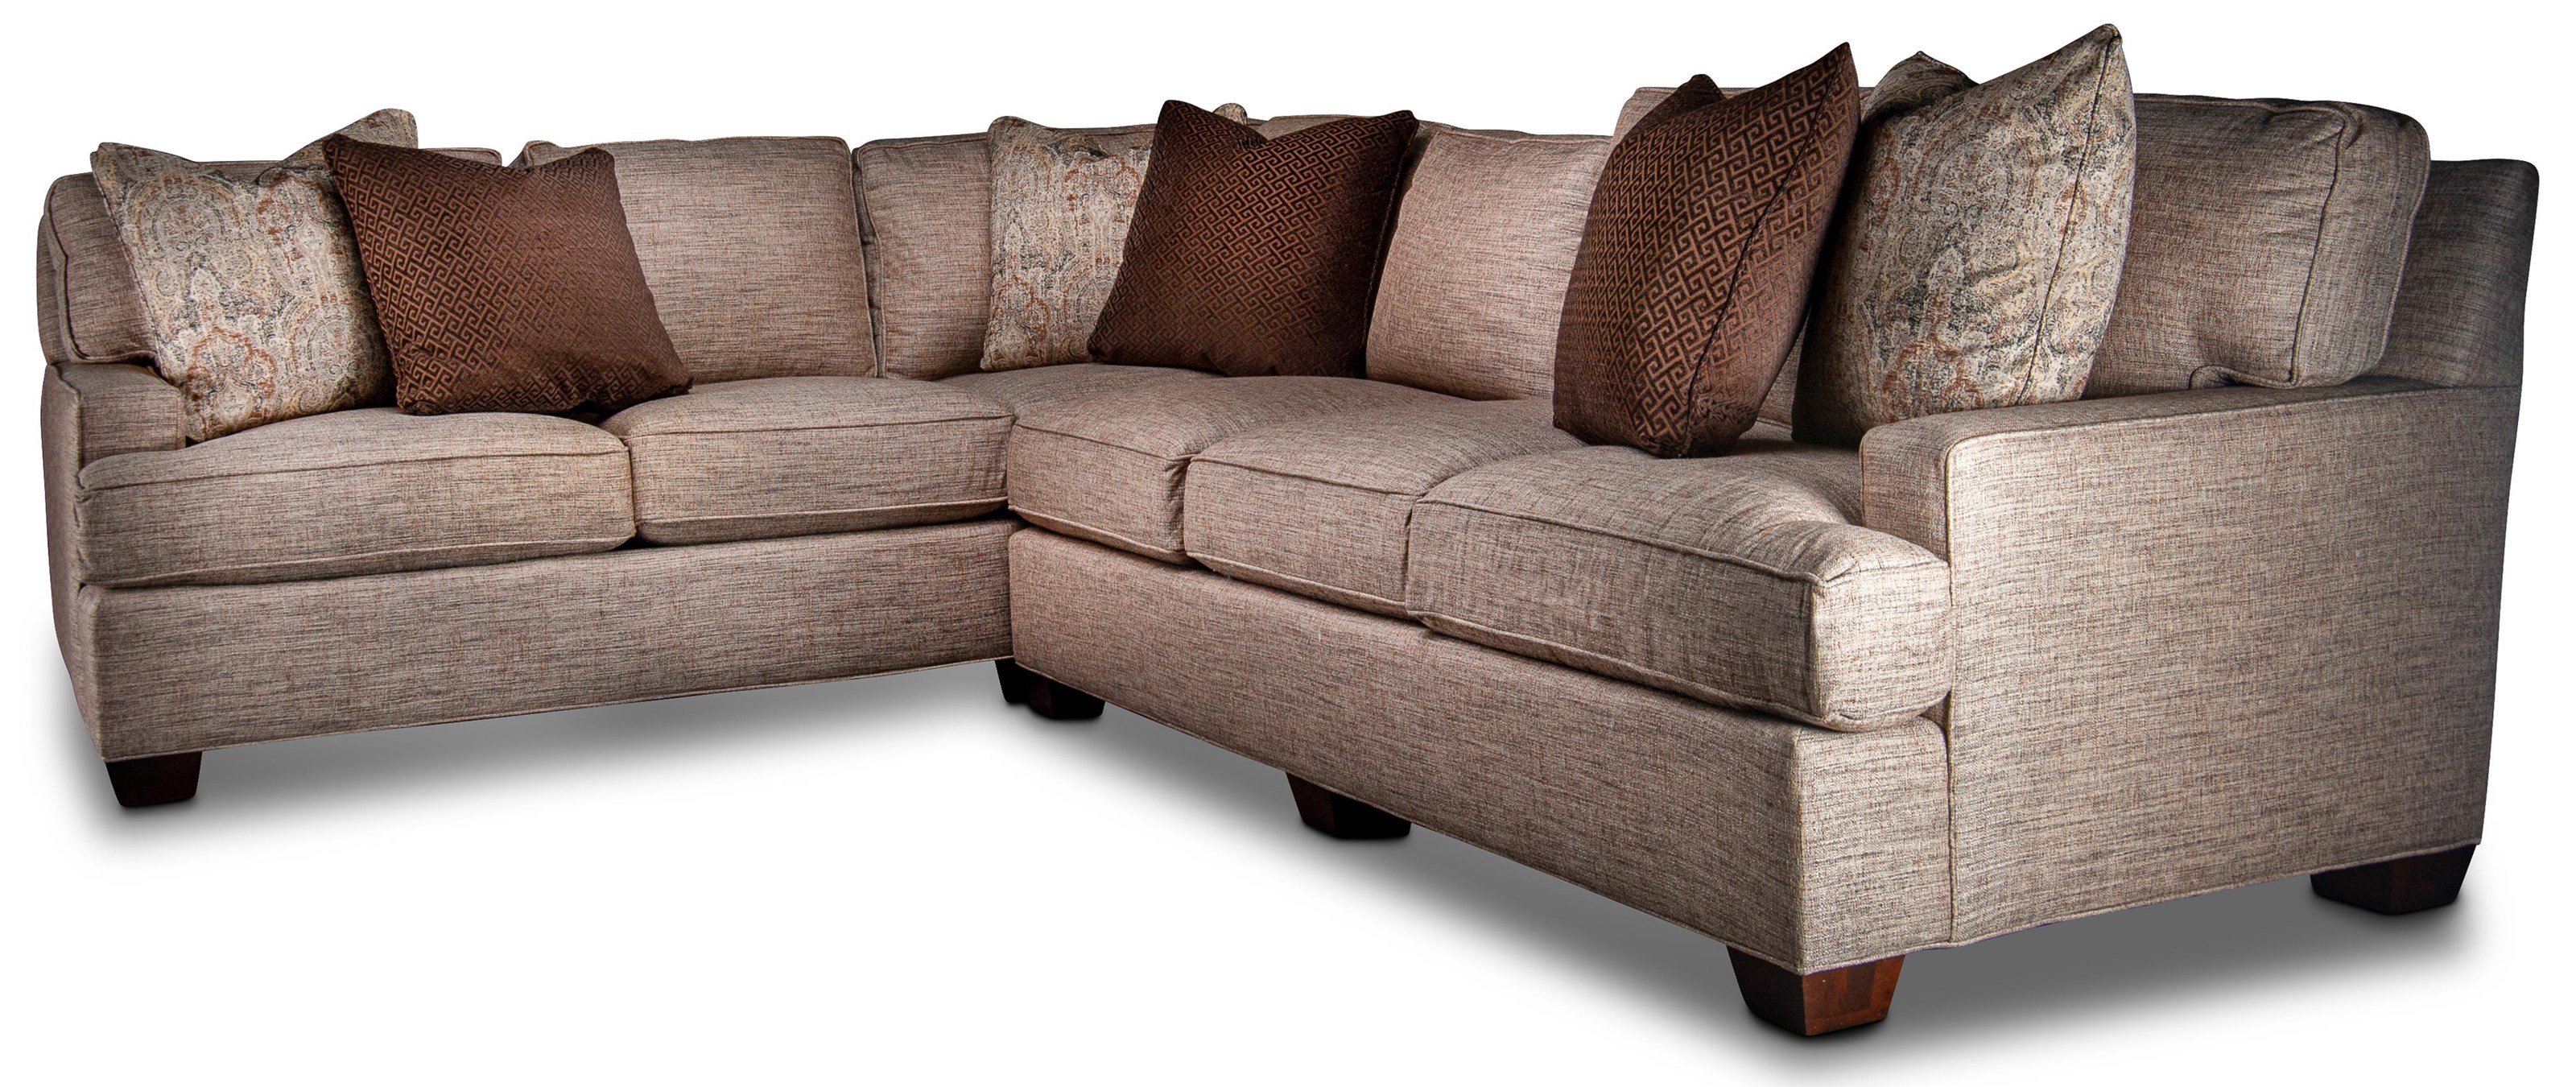 Halsey Halsey Sectional Sofa by King Hickory at Morris Home